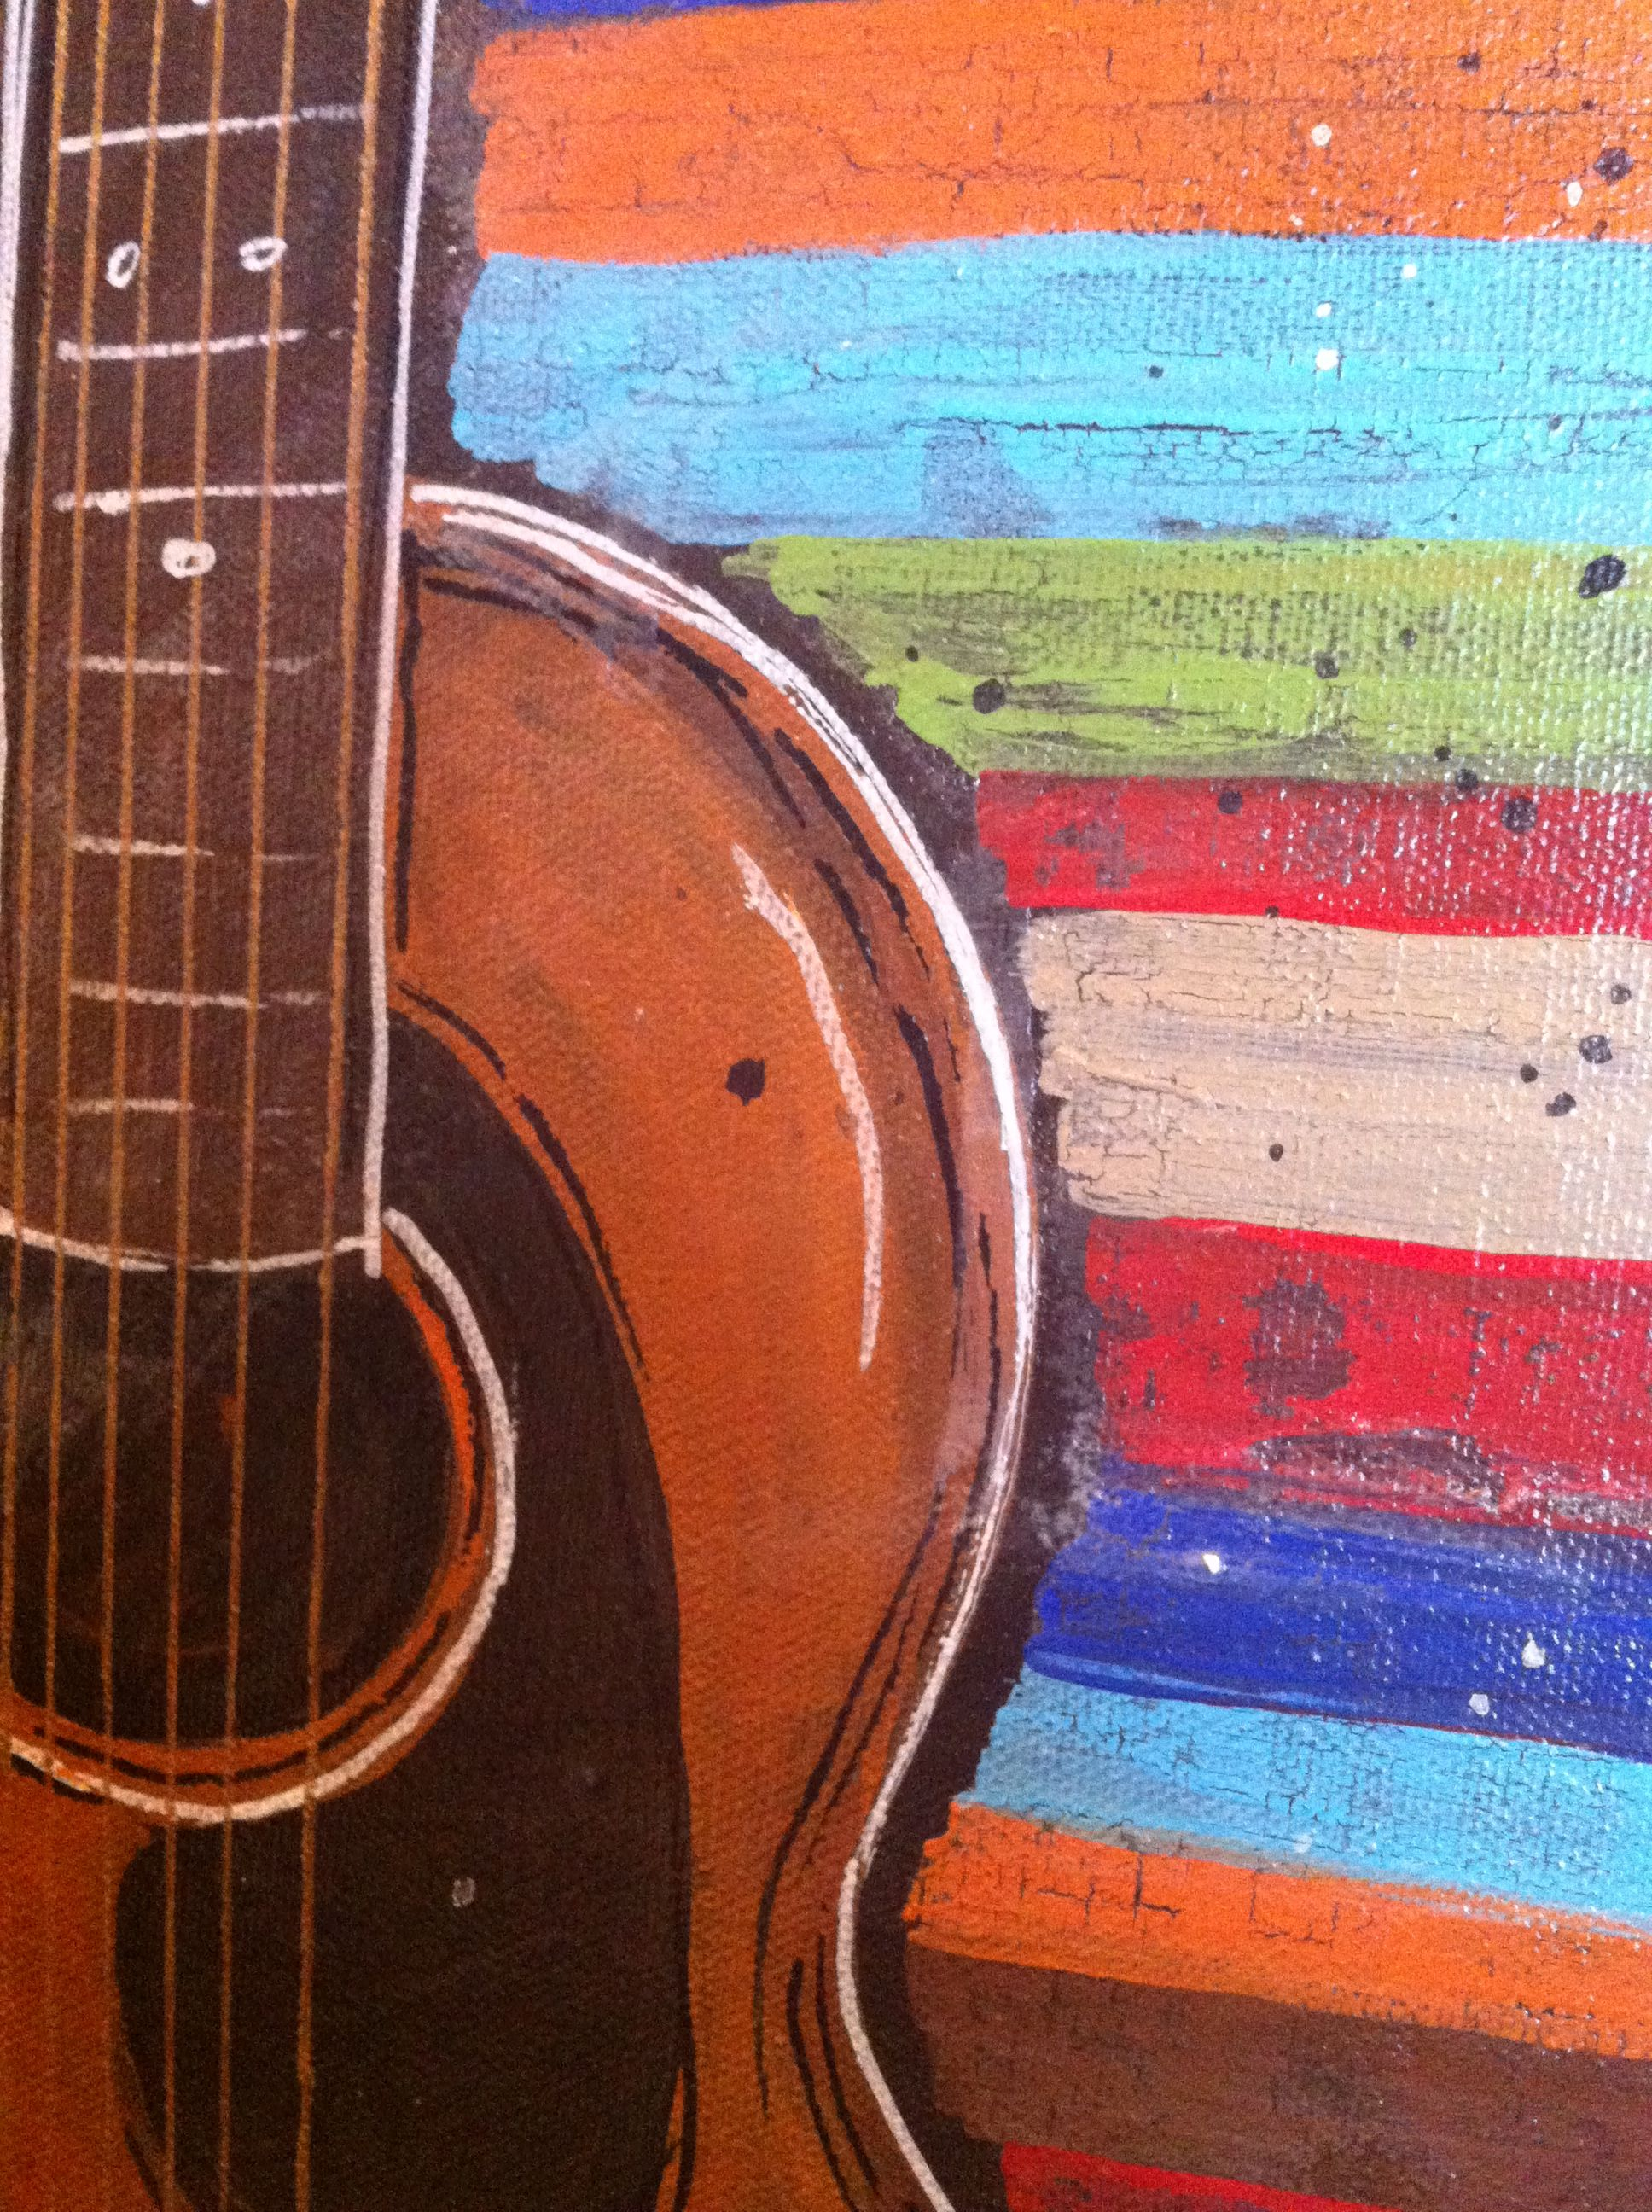 Guitarist Painting Acoustic guitar painti...